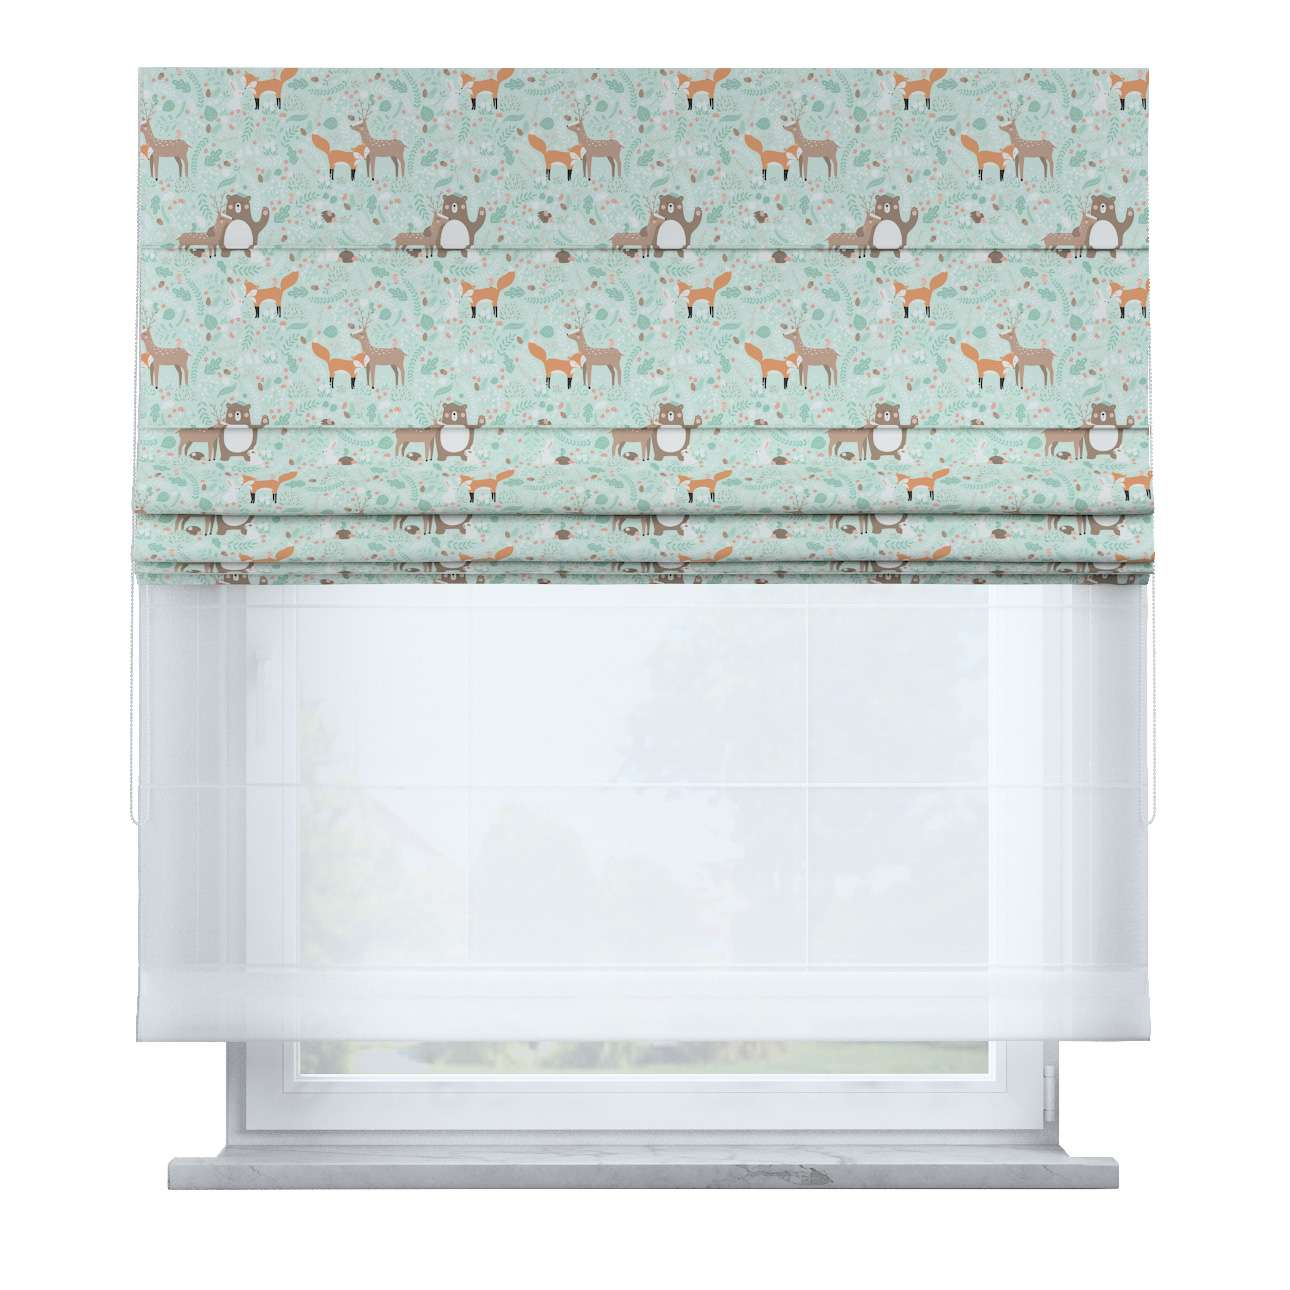 Voile and fabric roman blind (DUO II) in collection Magic Collection, fabric: 500-15